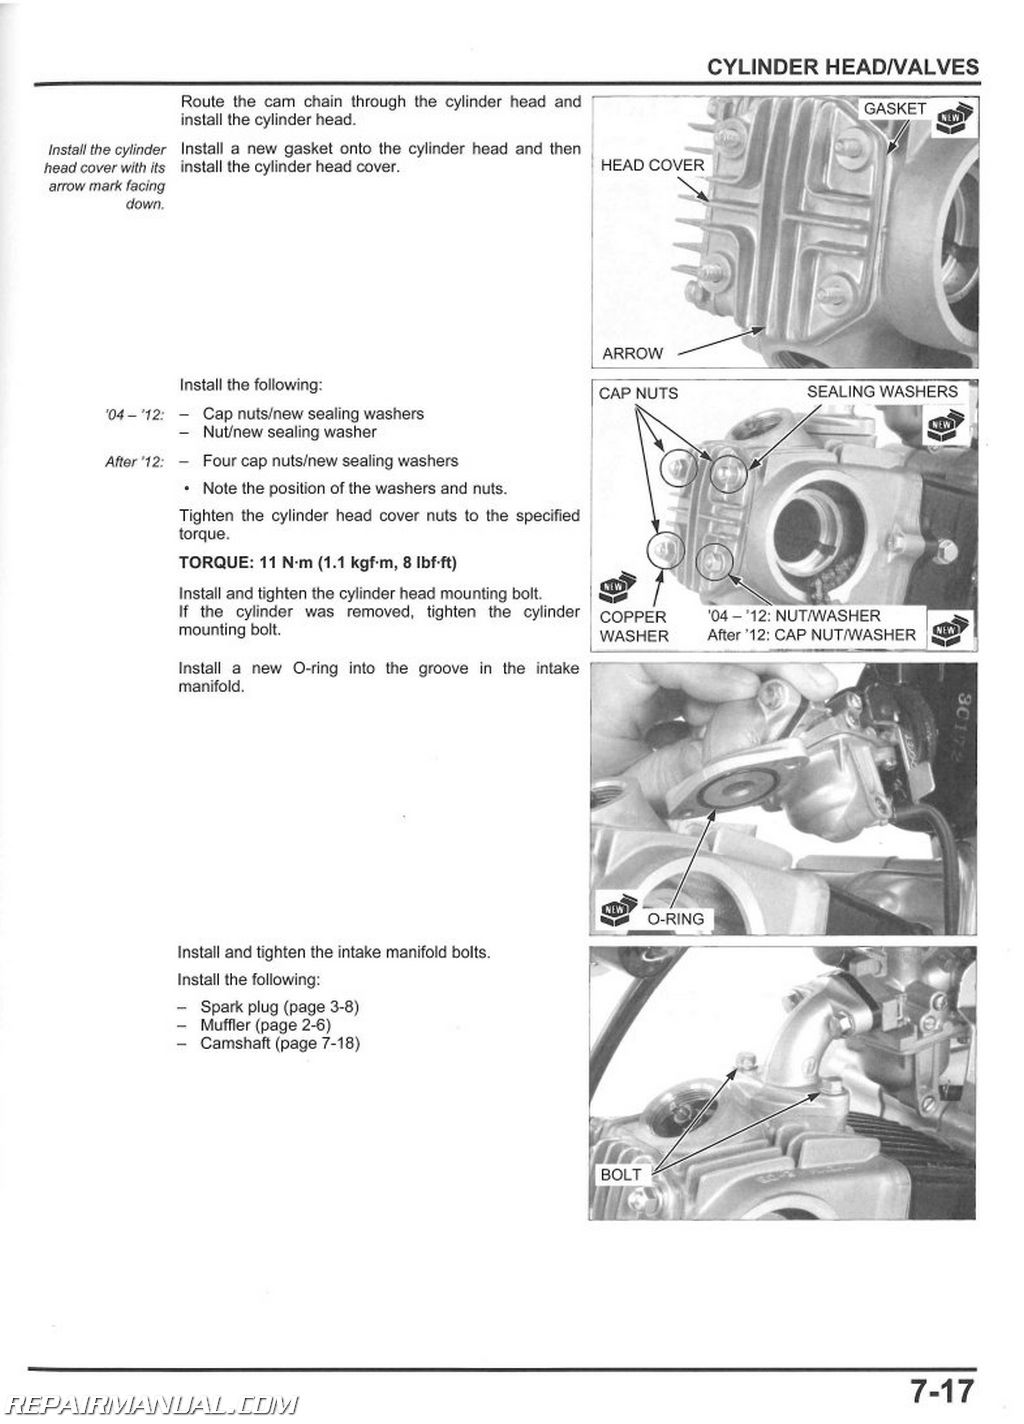 honda recon 250 repair manual